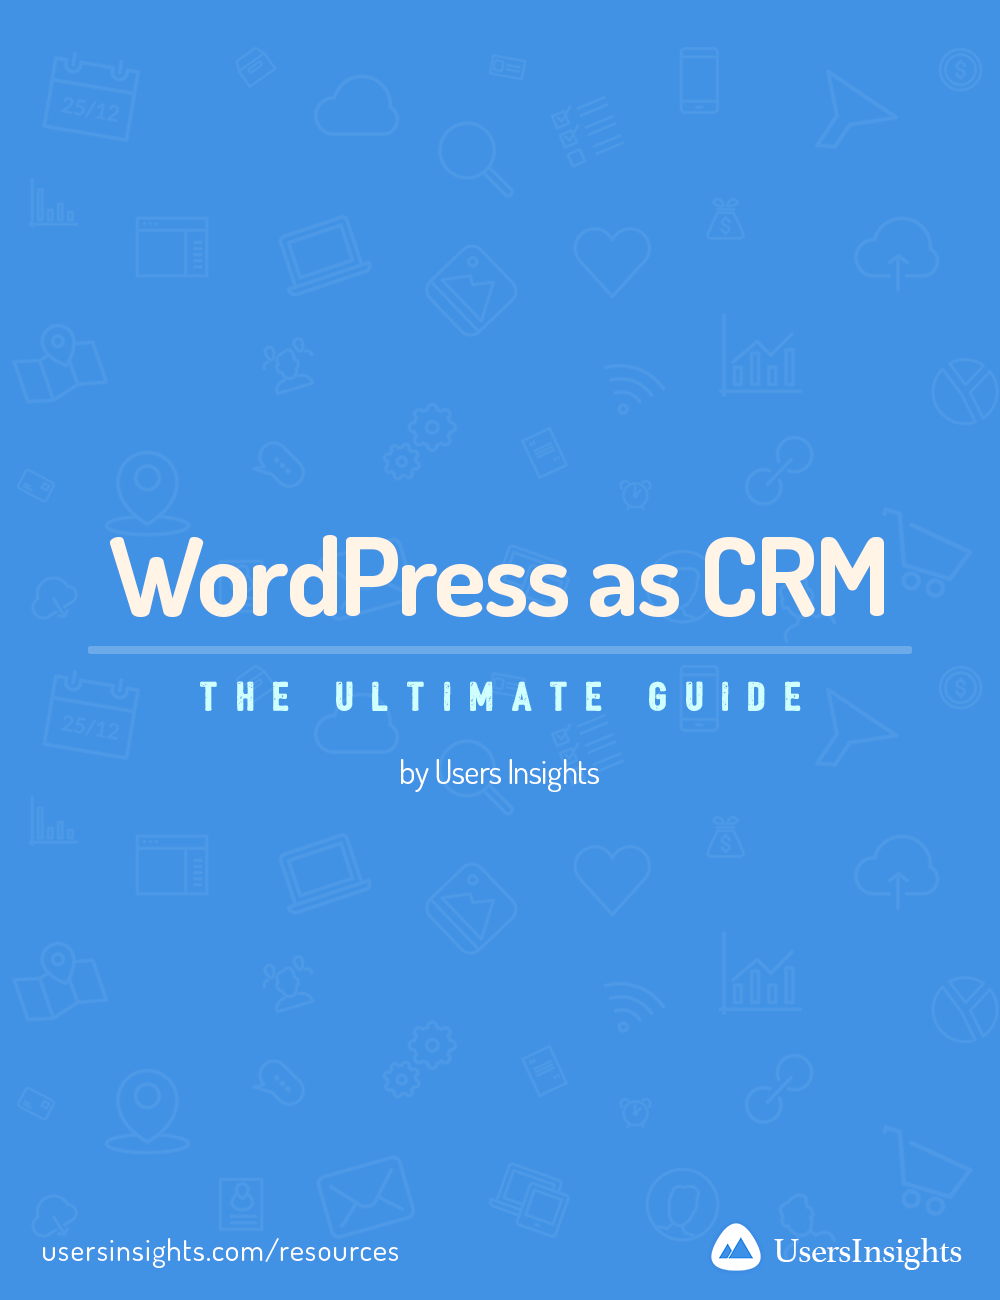 The ultimate guide to using WordPress as CRM system